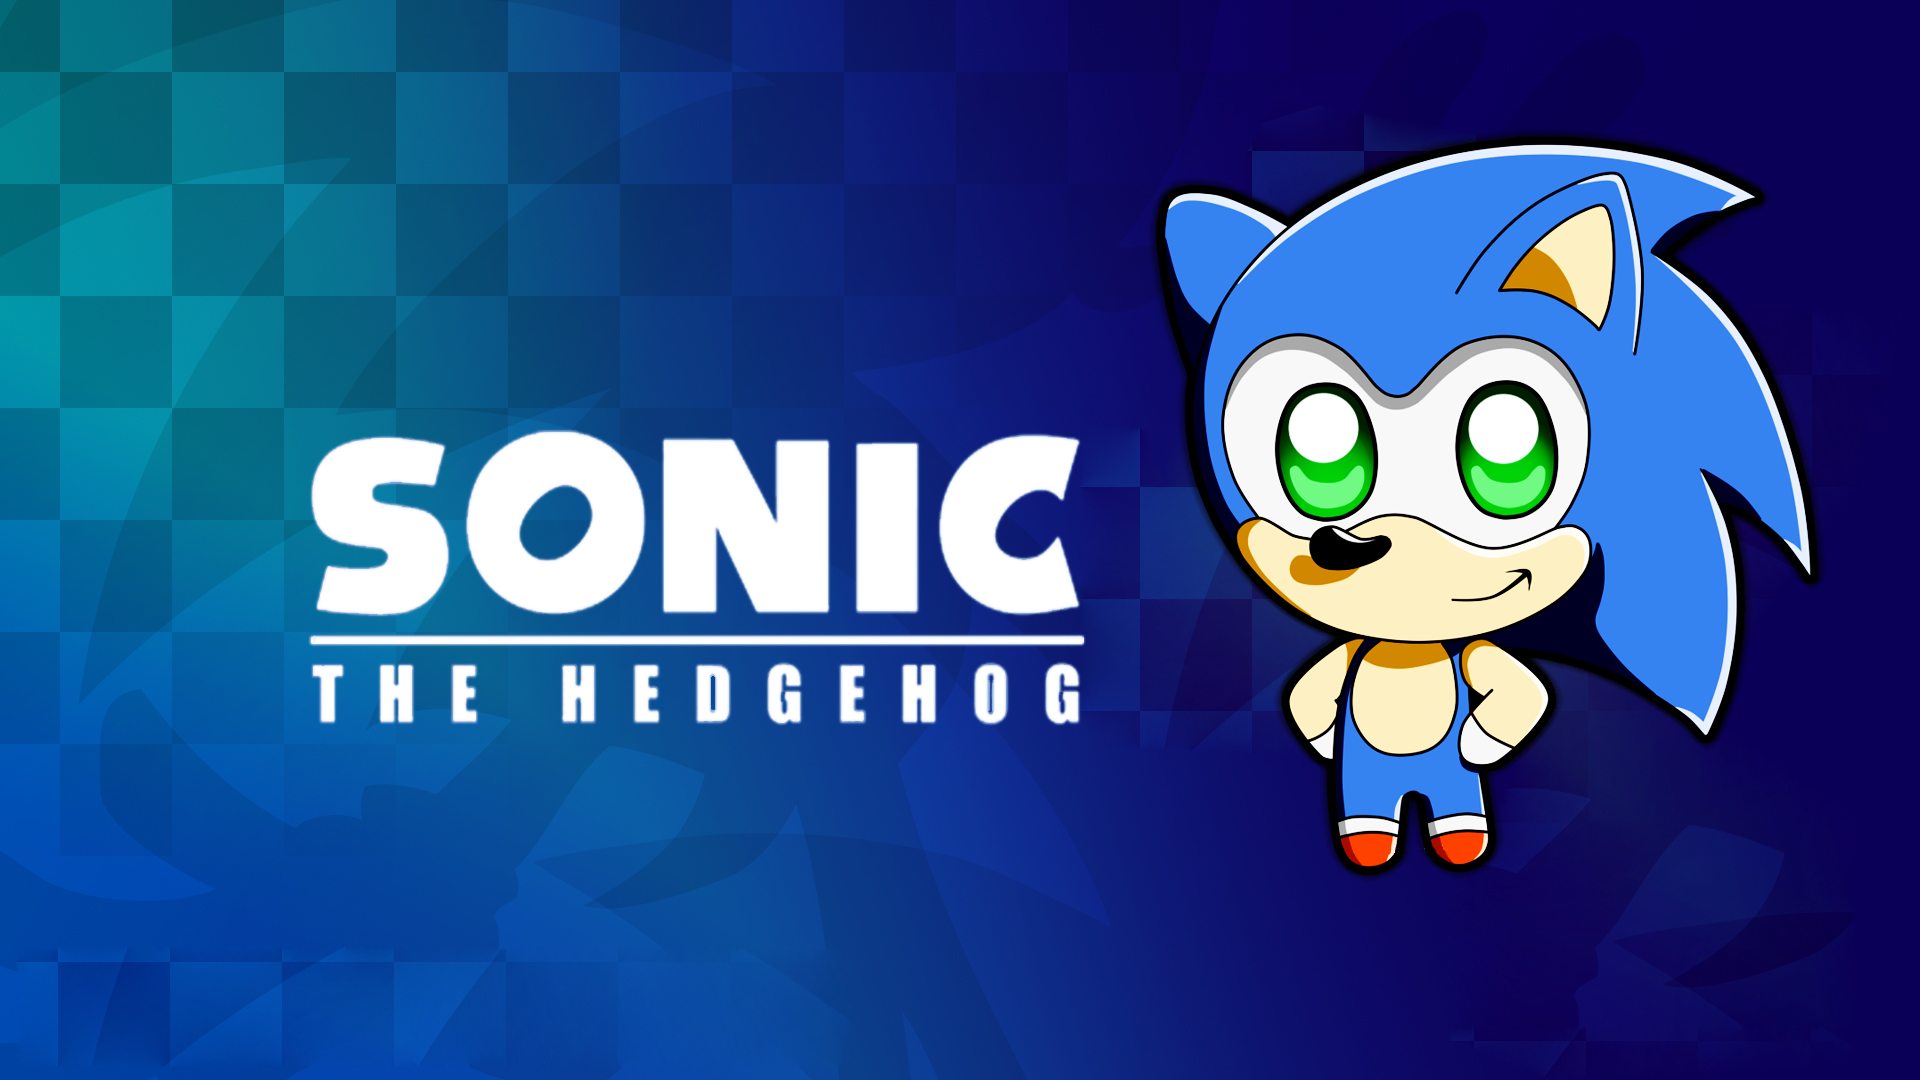 Sonic The Hedgehog Wallpaper By Zeozan On Deviantart